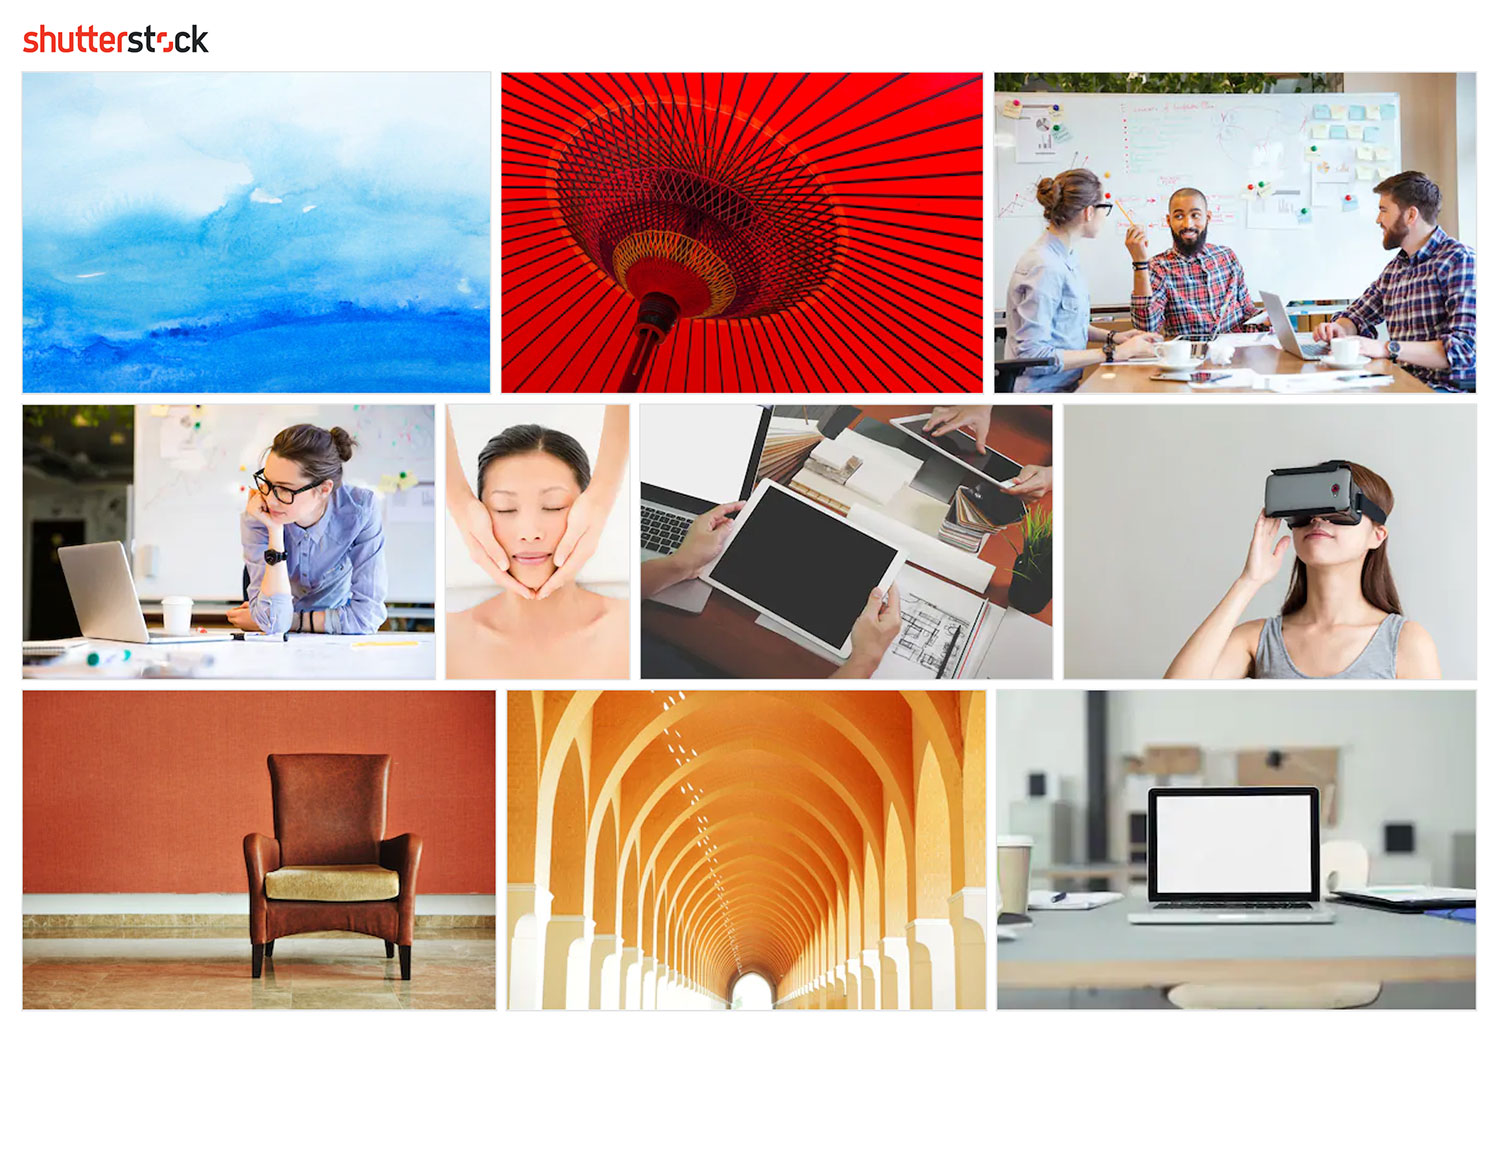 Download-40-free-images-Shutterstock